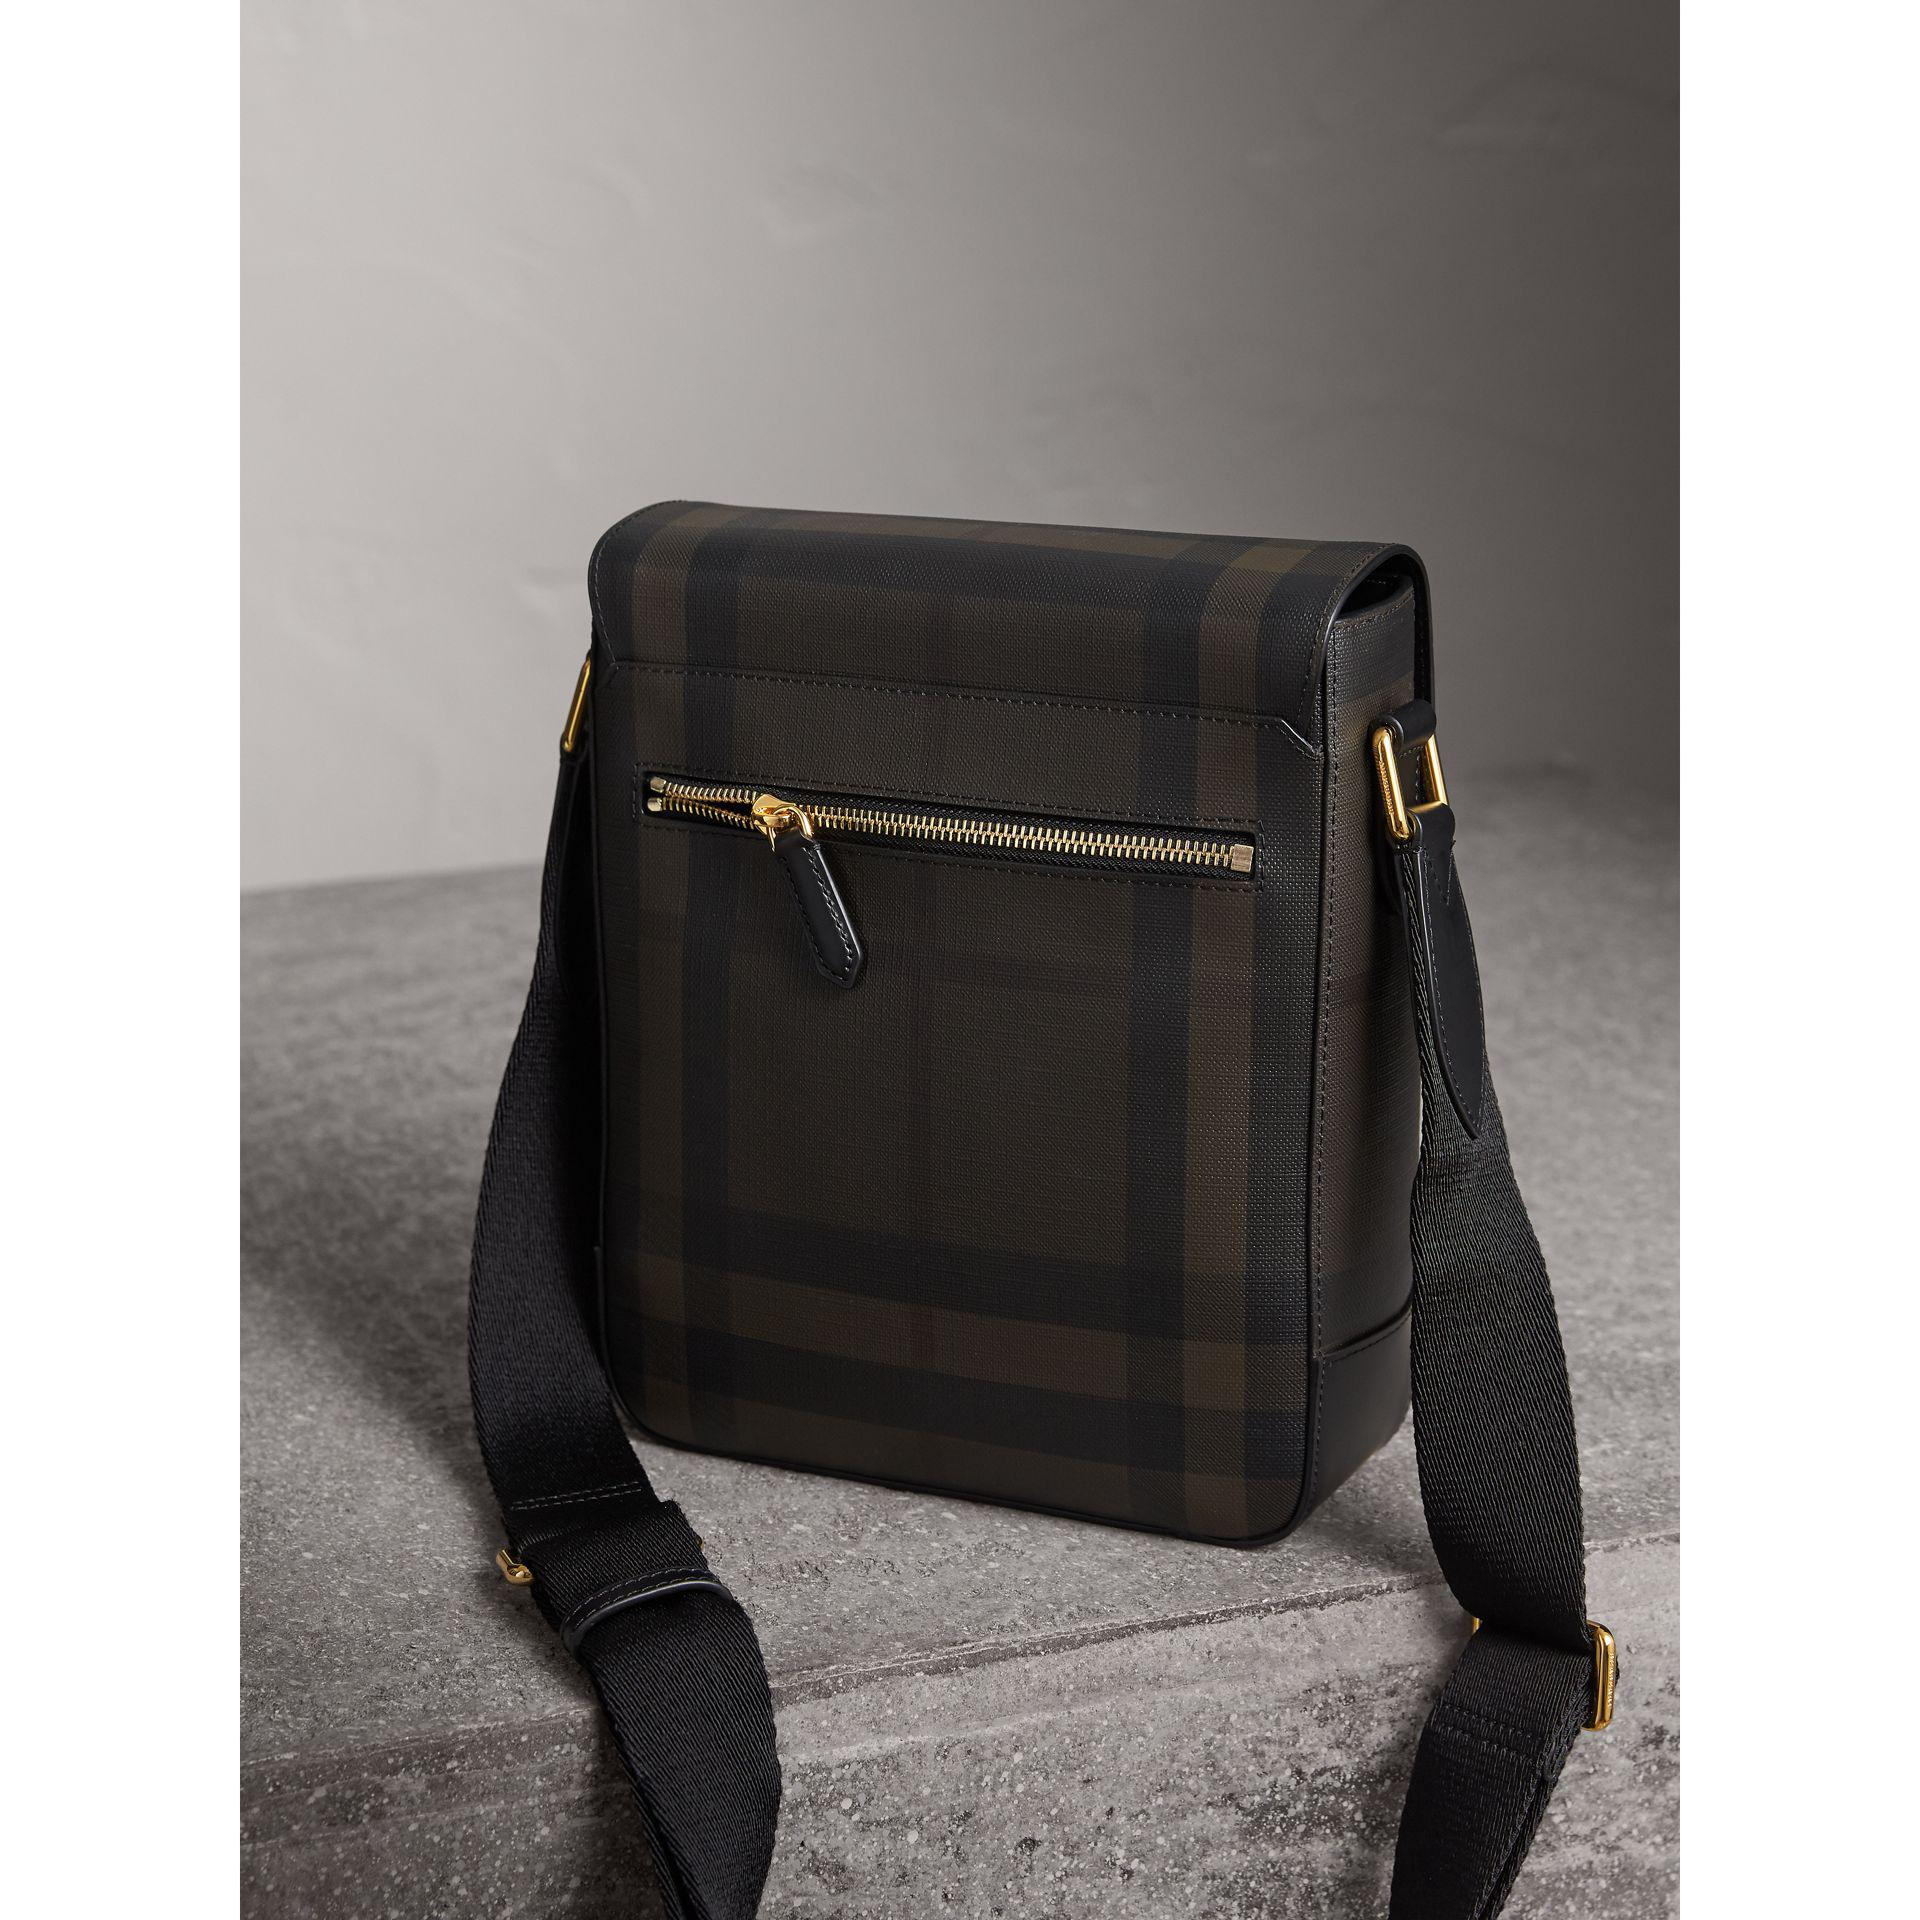 Burberry Canvas London Check Crossbody Bag Chocolate/black in Brown for Men